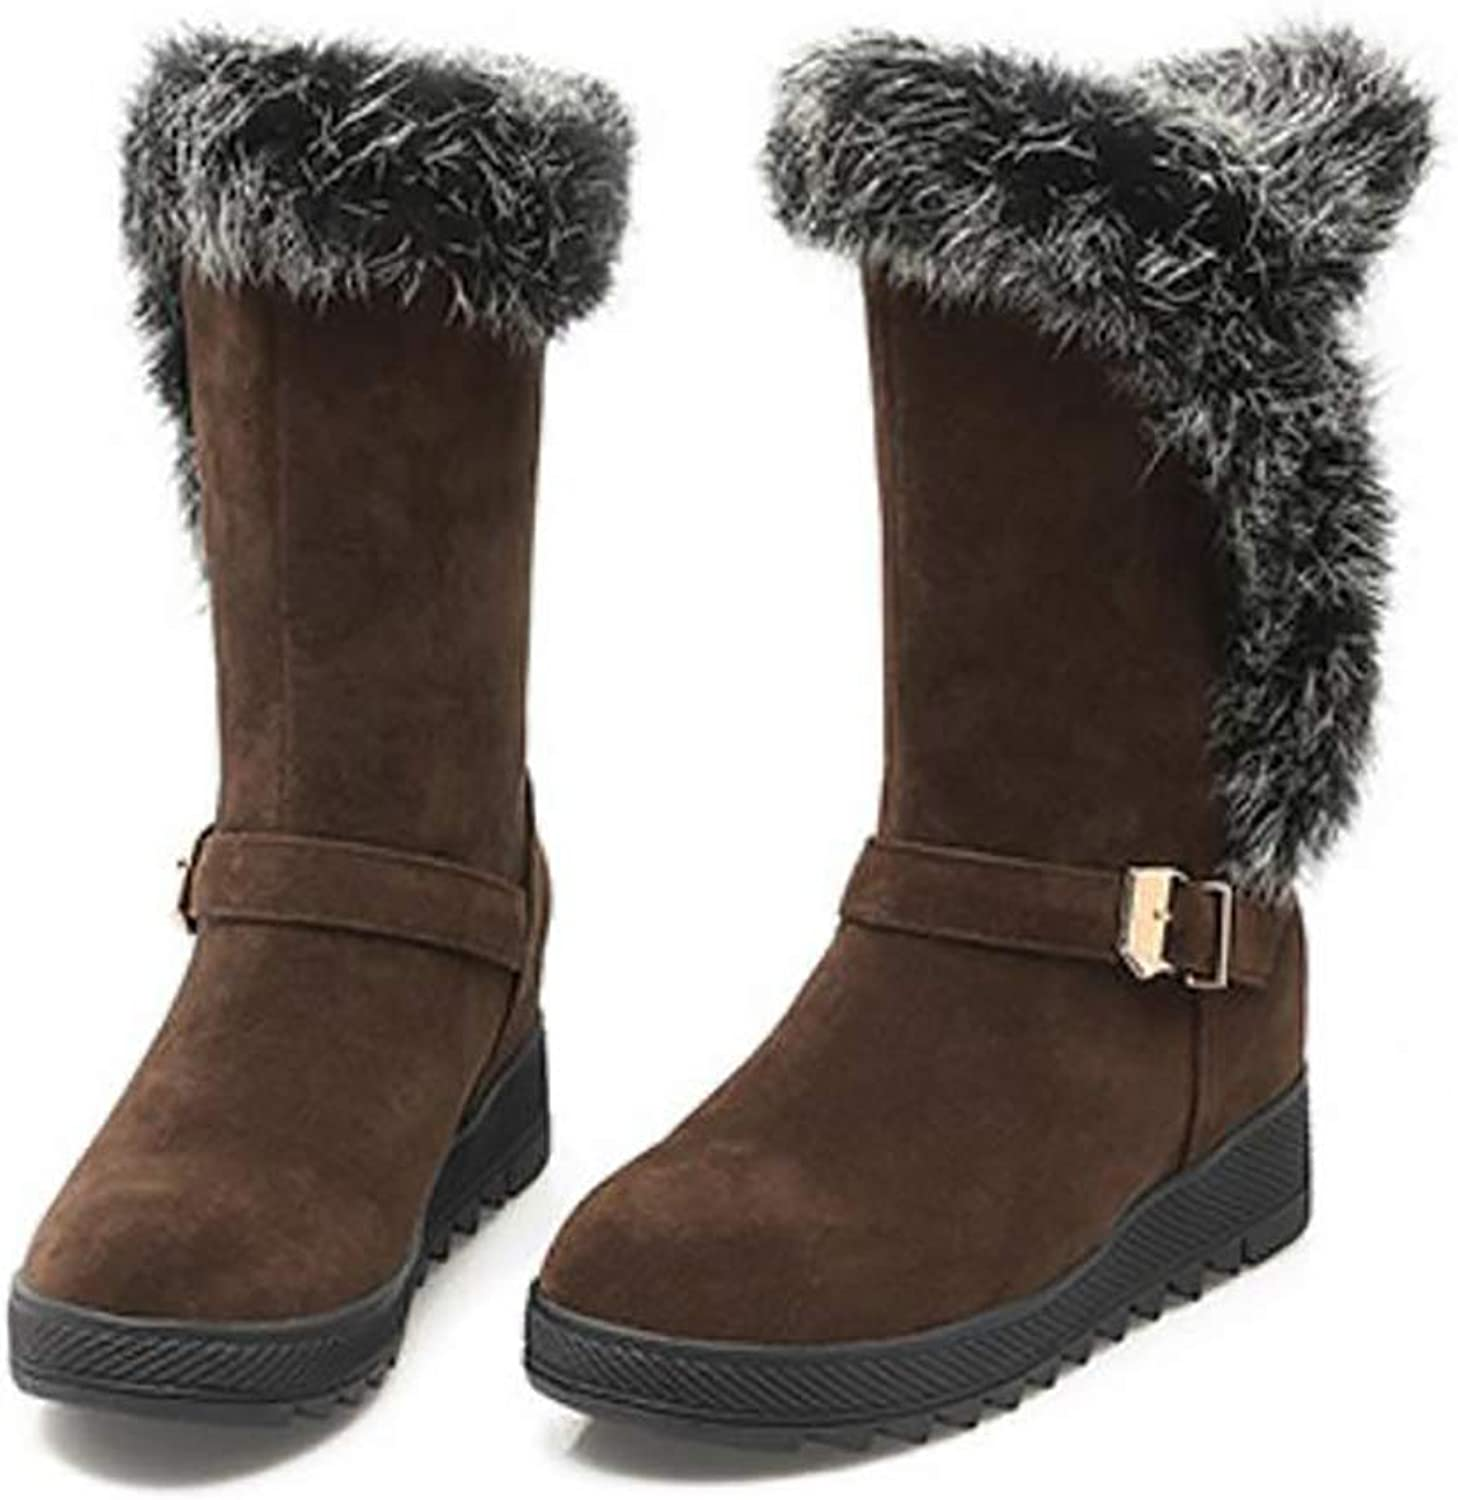 Warm Snow Boots for Women Thickened Plush Lining Matte Winter Boot,Brown,34